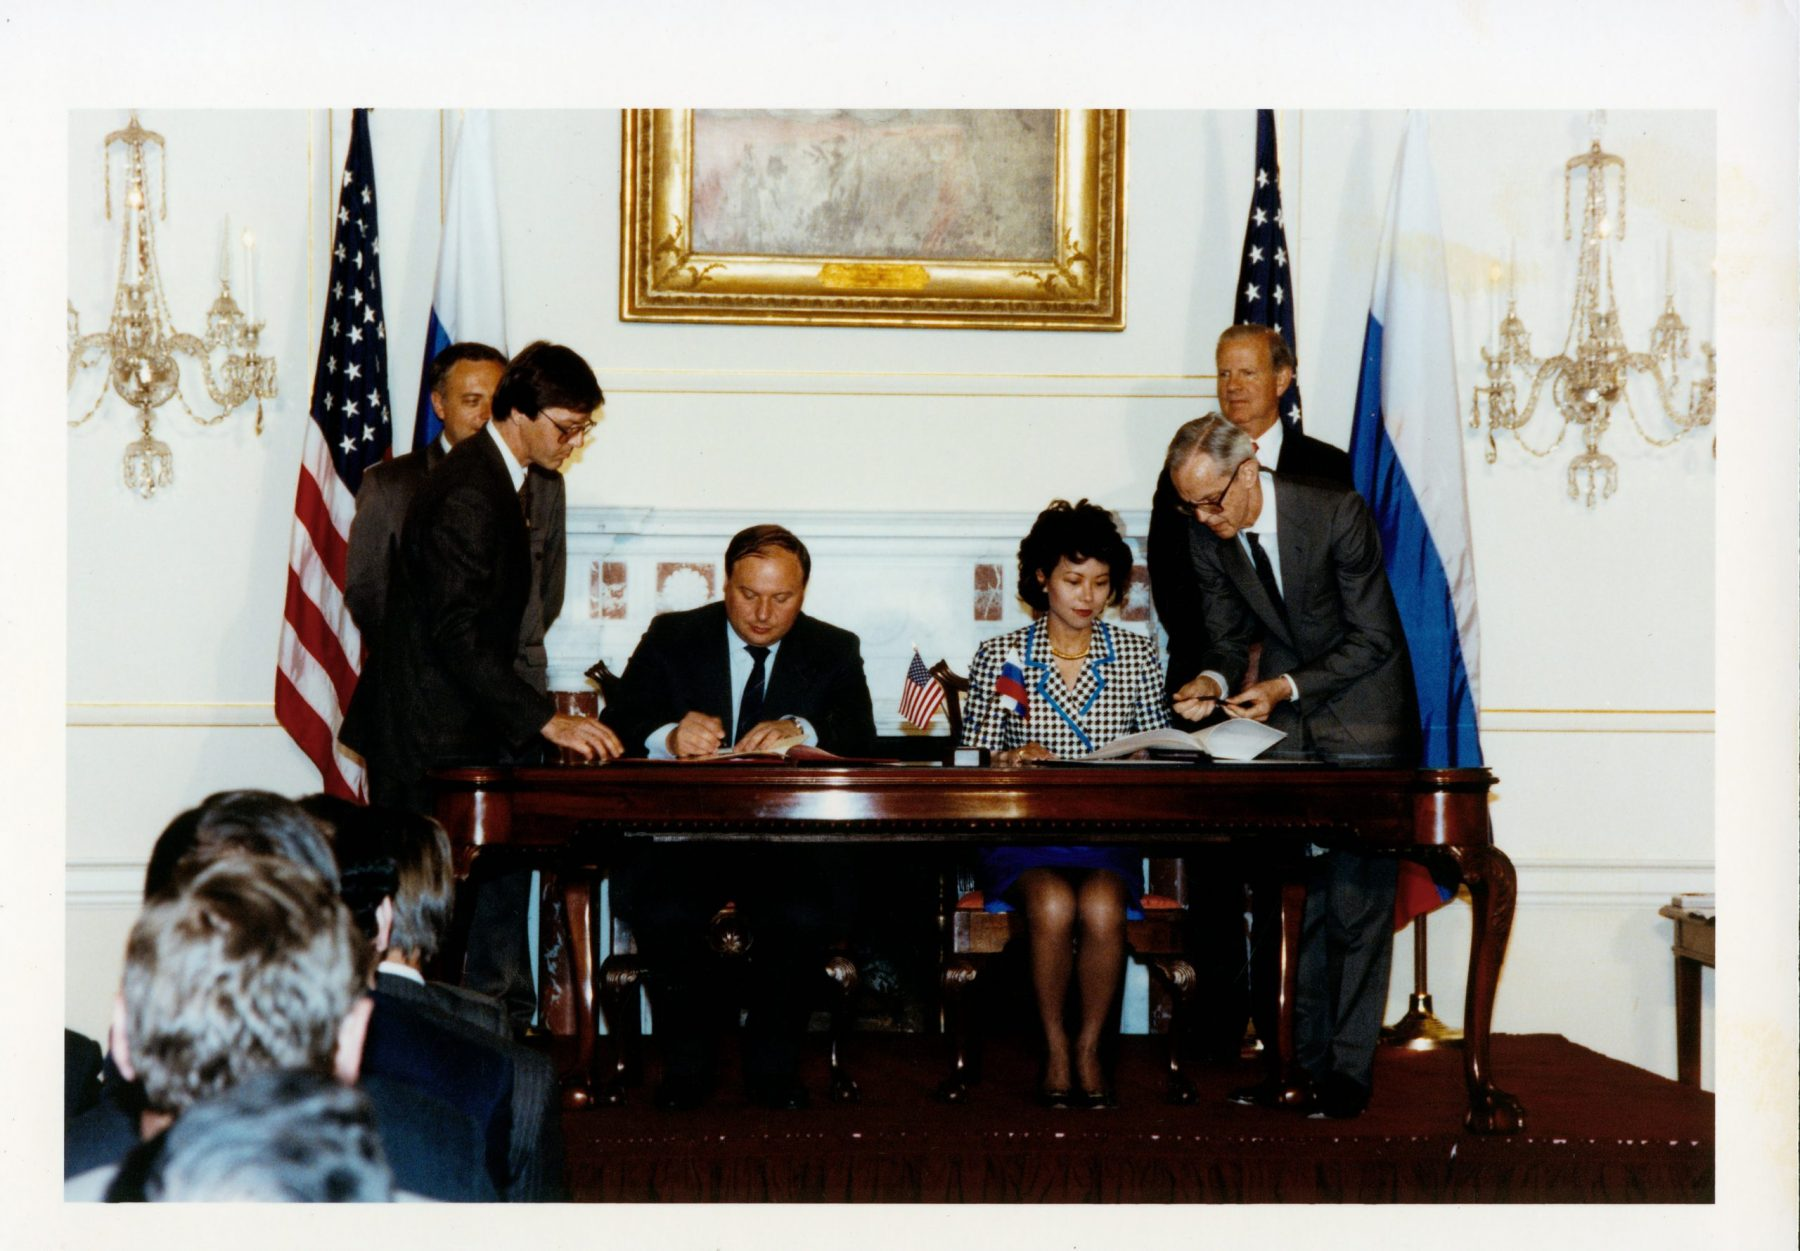 Peace Corps Director Elaine Chao signing the Peace Corps country agreement with Russian Prime Minister Yegor Gaidar.